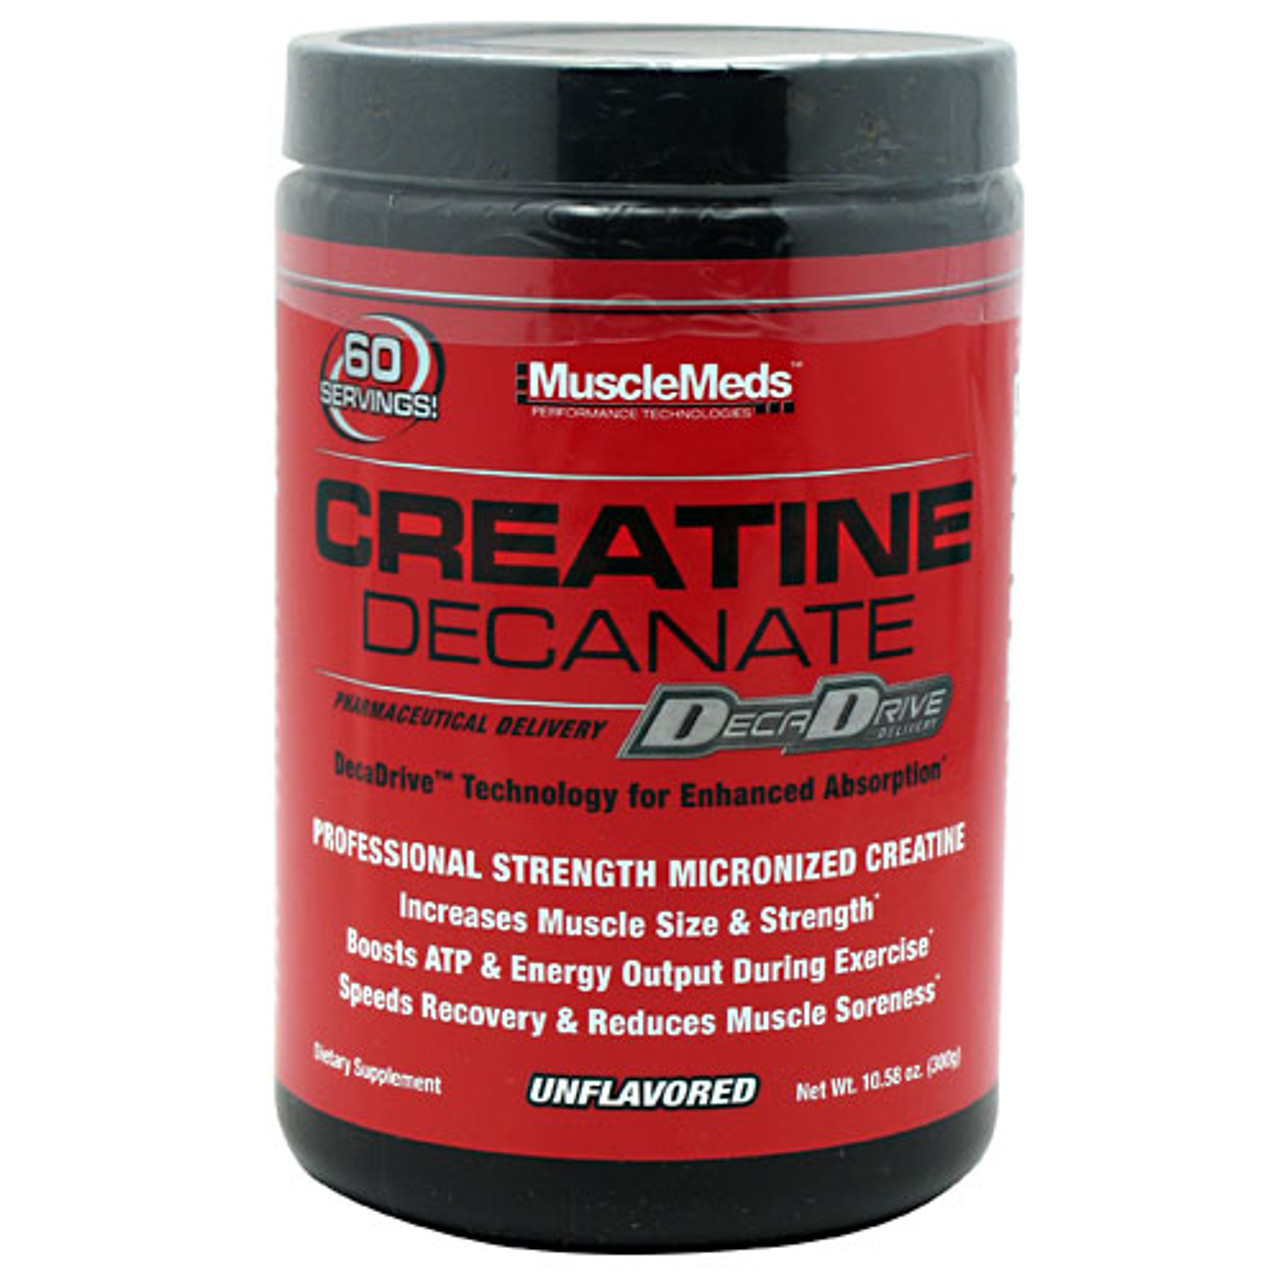 Creatine Decanate 10oz Muscle Meds